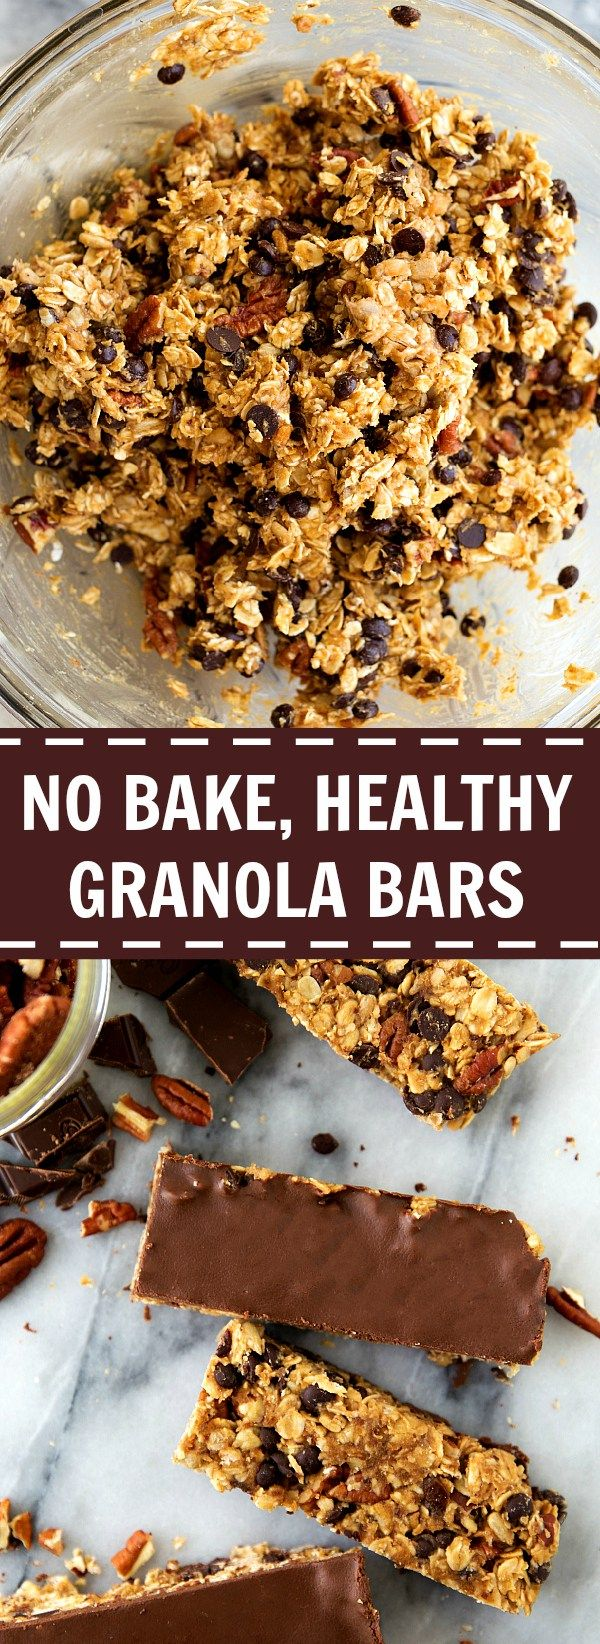 NO BAKE, CLEAN EATING, HEALTHY GRANOLA BARS. Super quick and delicious.